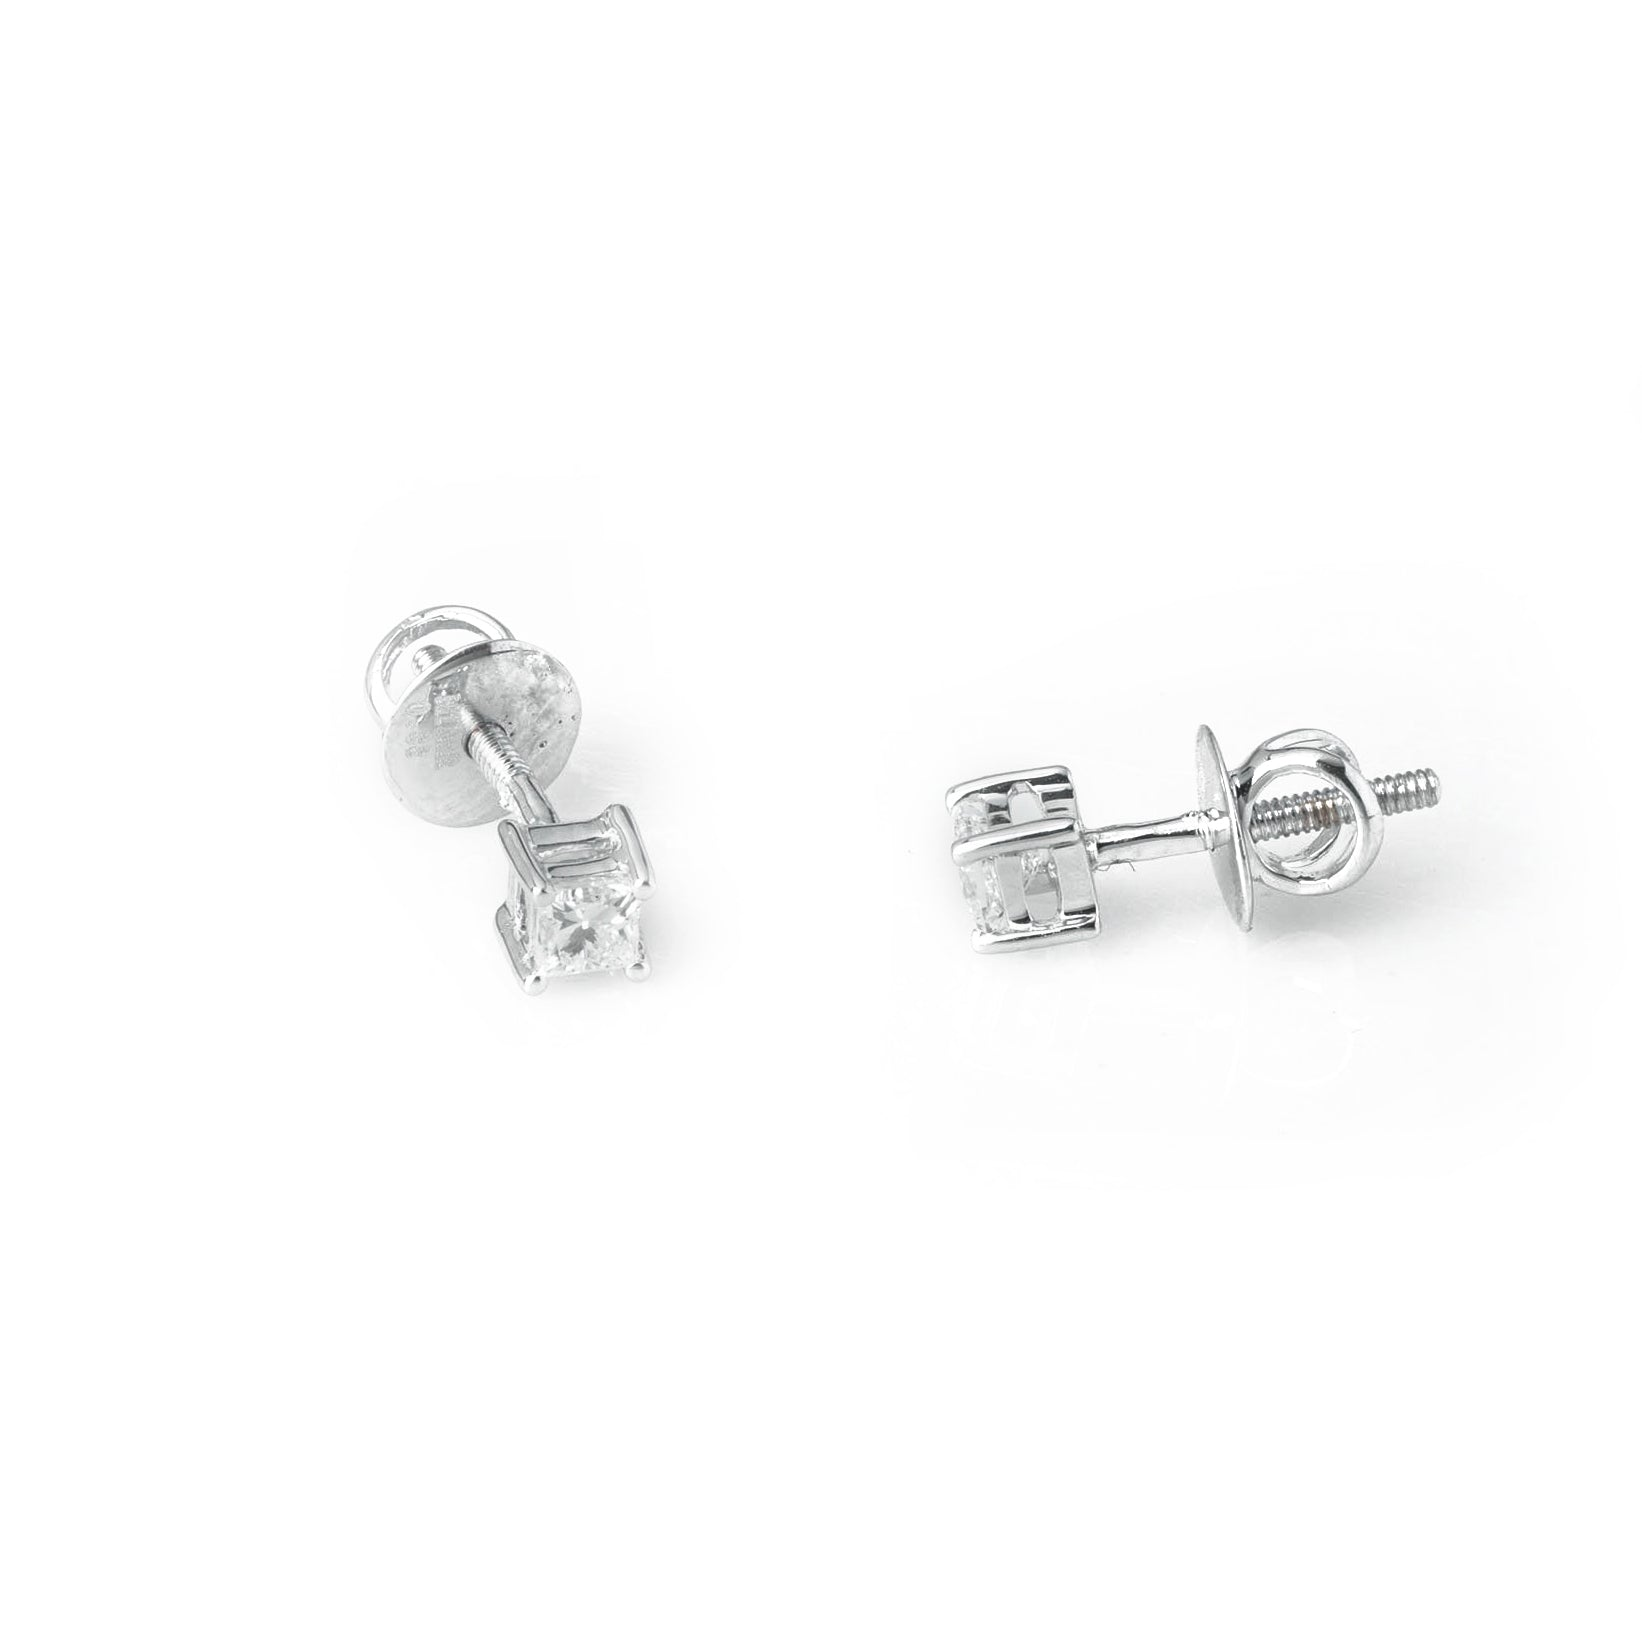 18ct White Gold 0.33ct Princess Cut Diamond Stud Earrings (MCS3686)